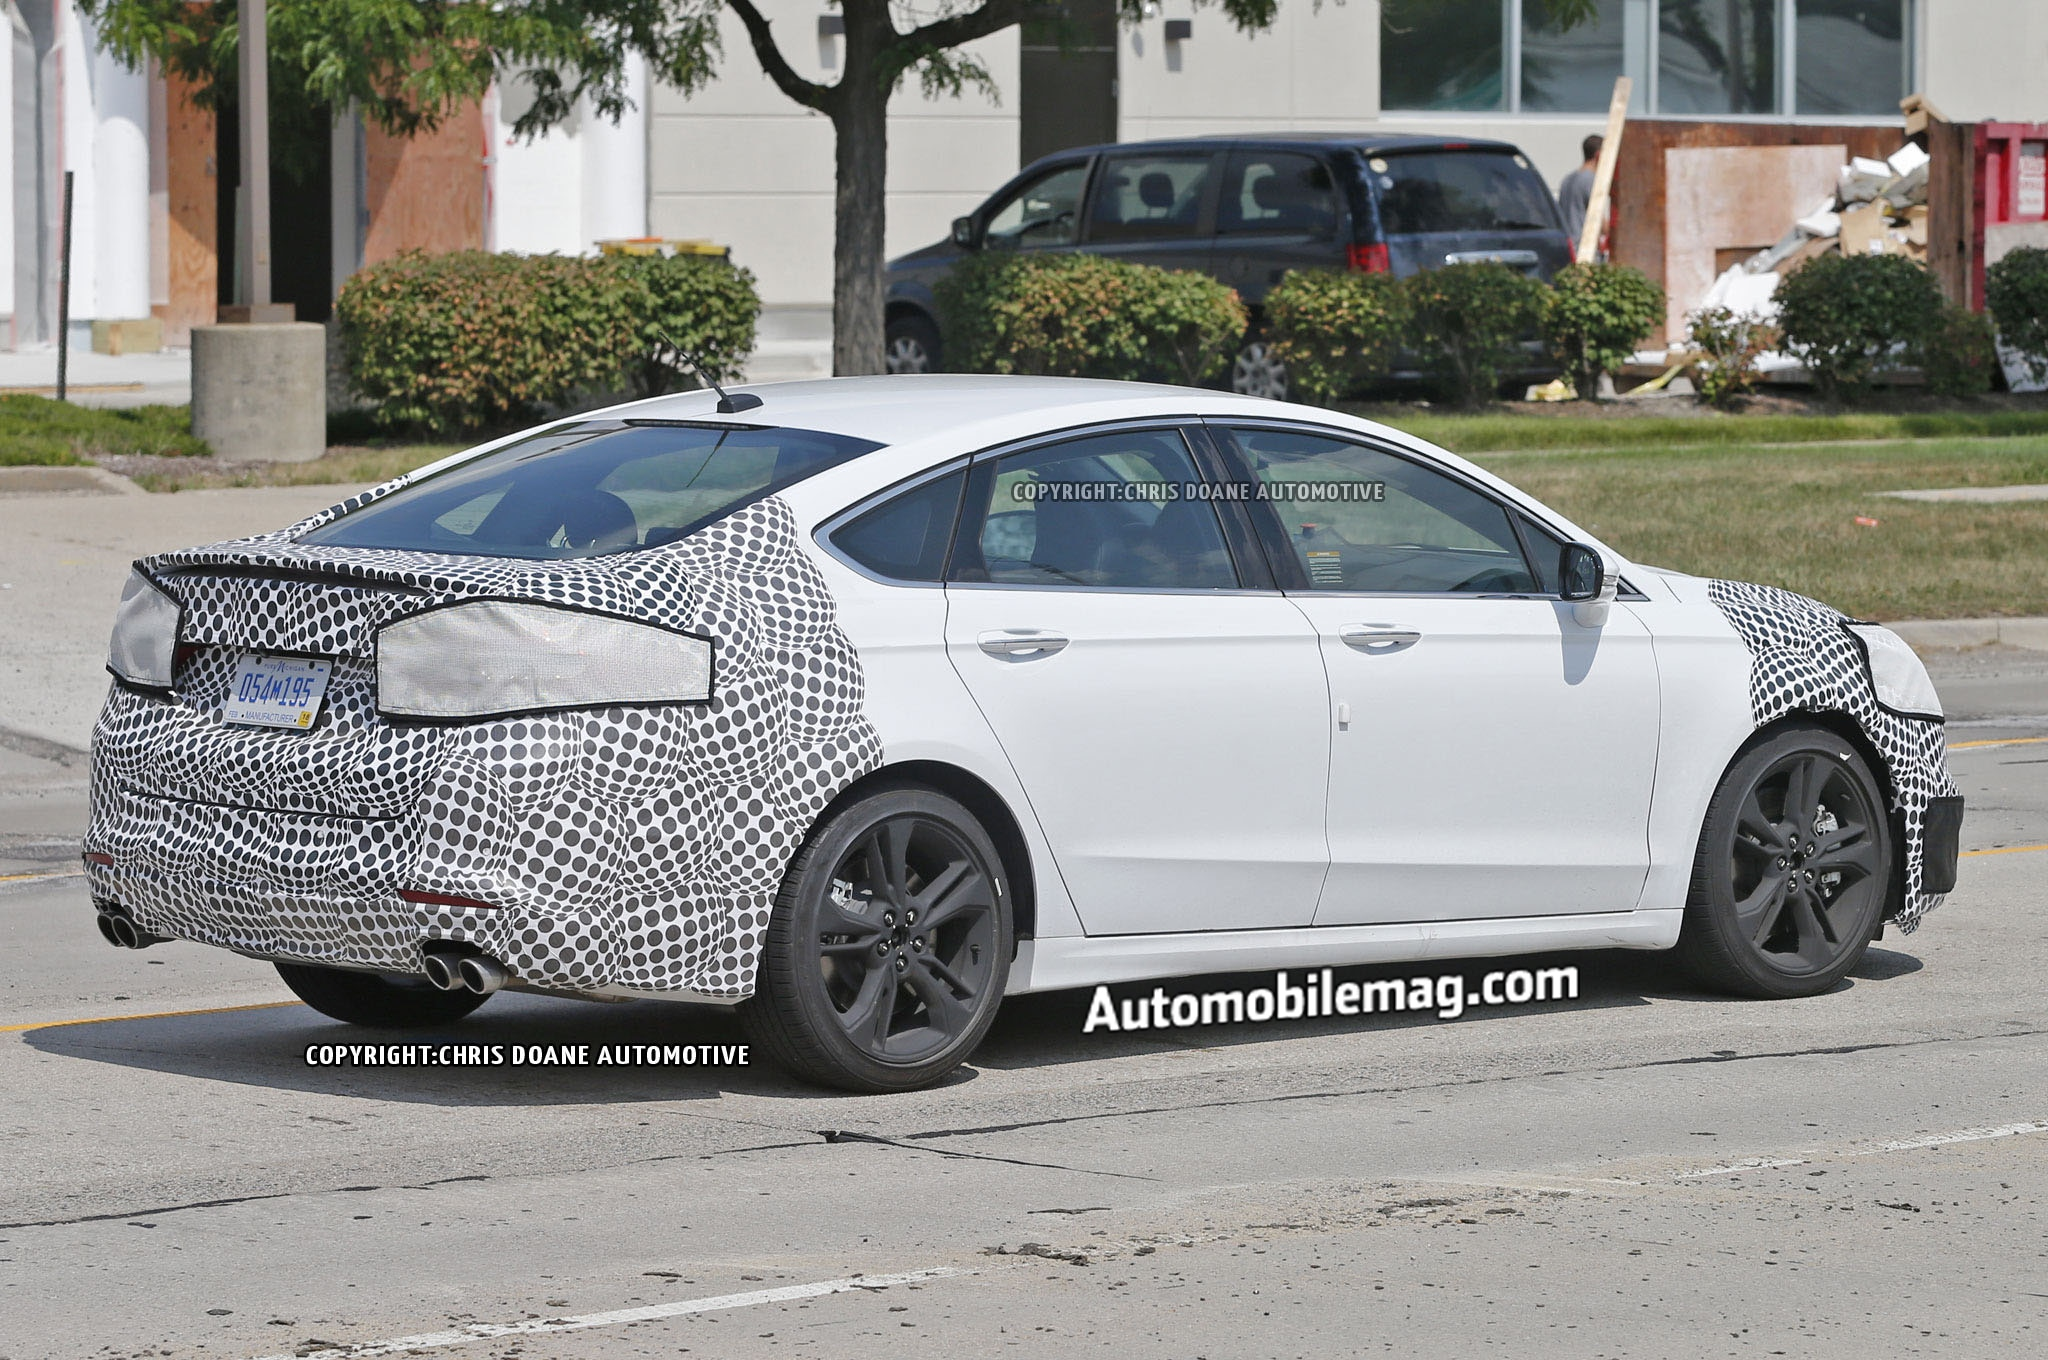 Ford Fusion St Prototype Spied With Quad Exhausts